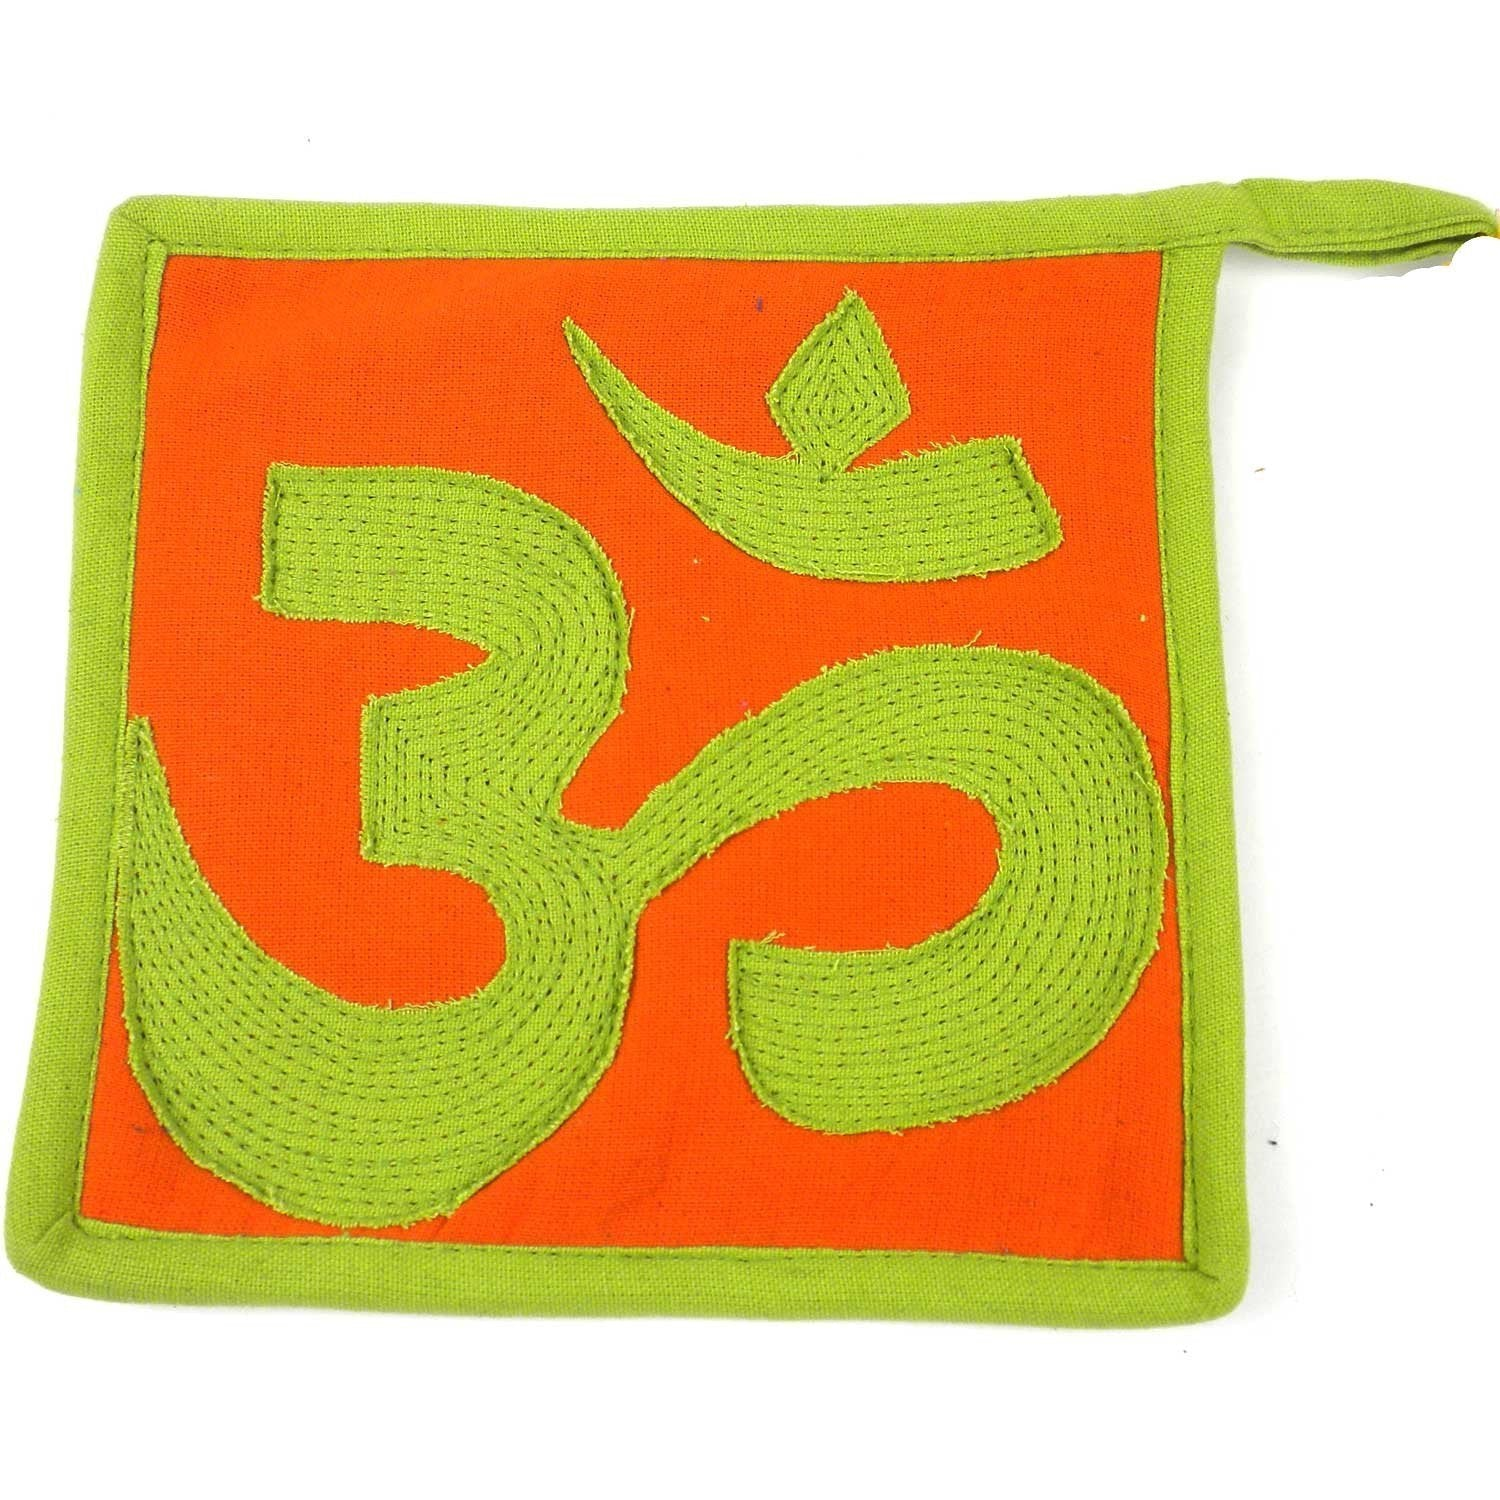 Om Hot Pad - Green and Orange